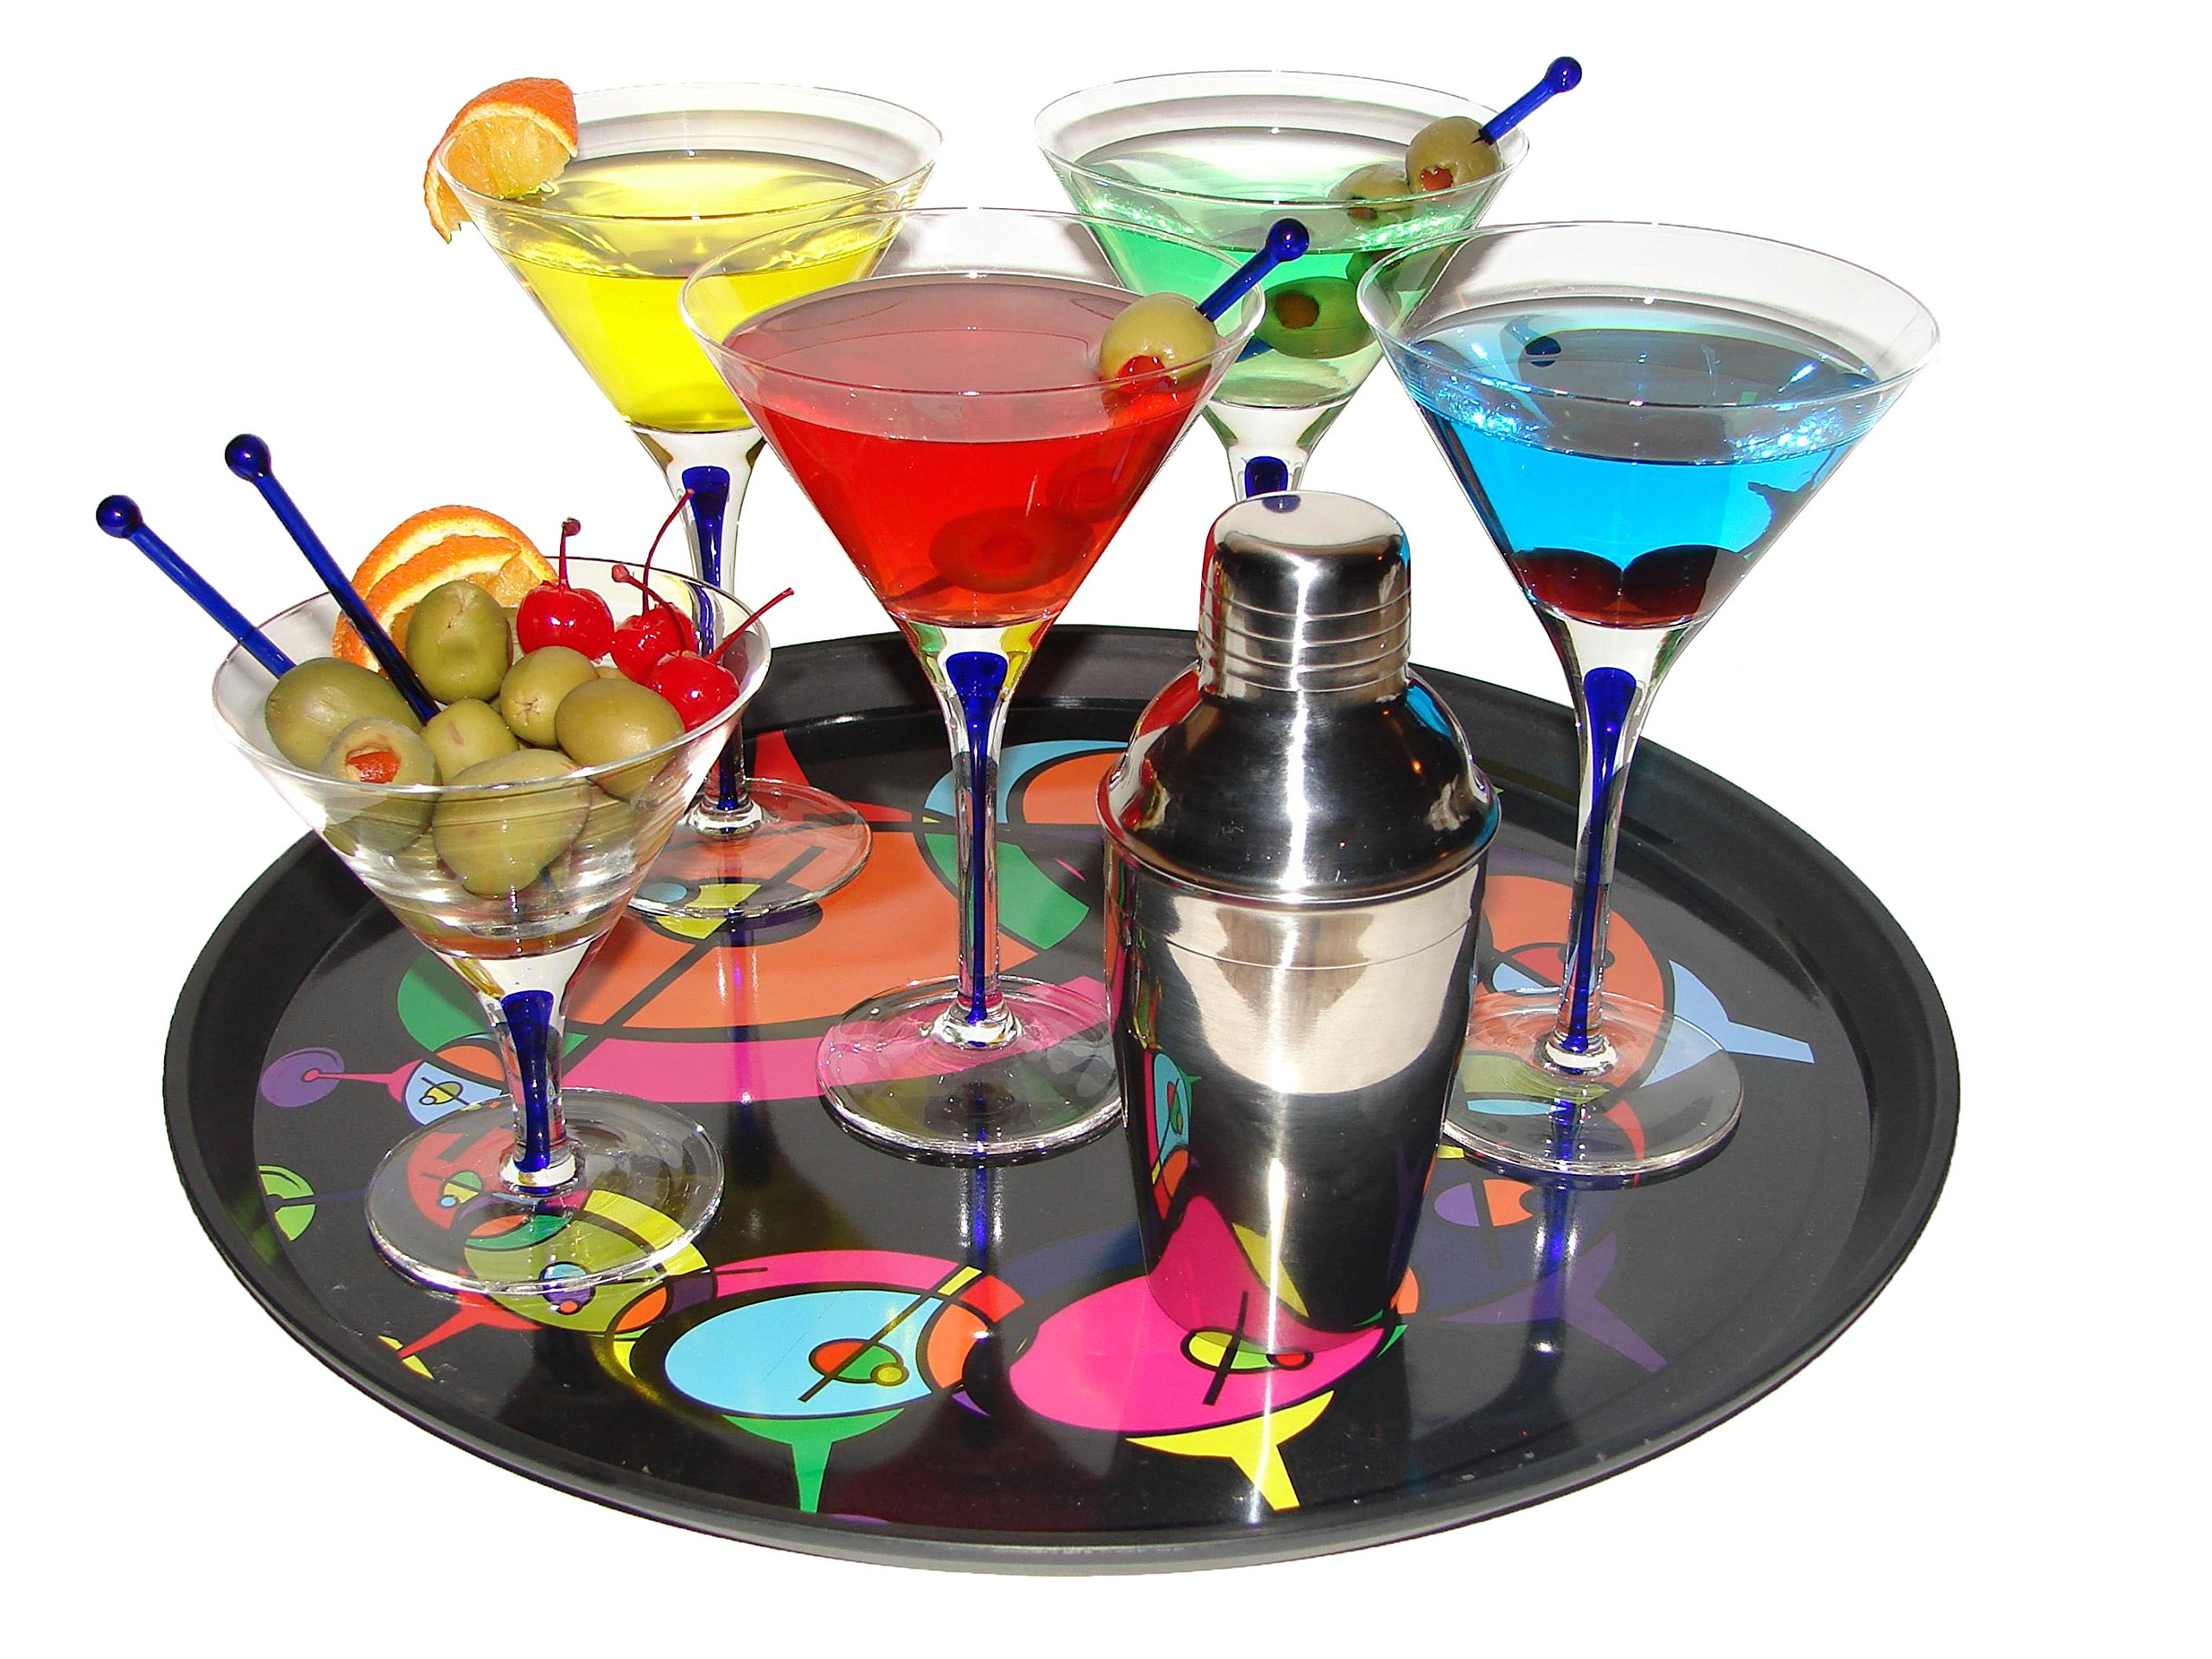 Martini Glasses Shaker Bar Set Travel Gift 16 Piece Handcrafted Blue Infused Crystal Clear Glasses Olive Dish Glass Stir Sticks Cocktail Margarita Drink Mixer Shaker Strainer Commercial Grade Tray